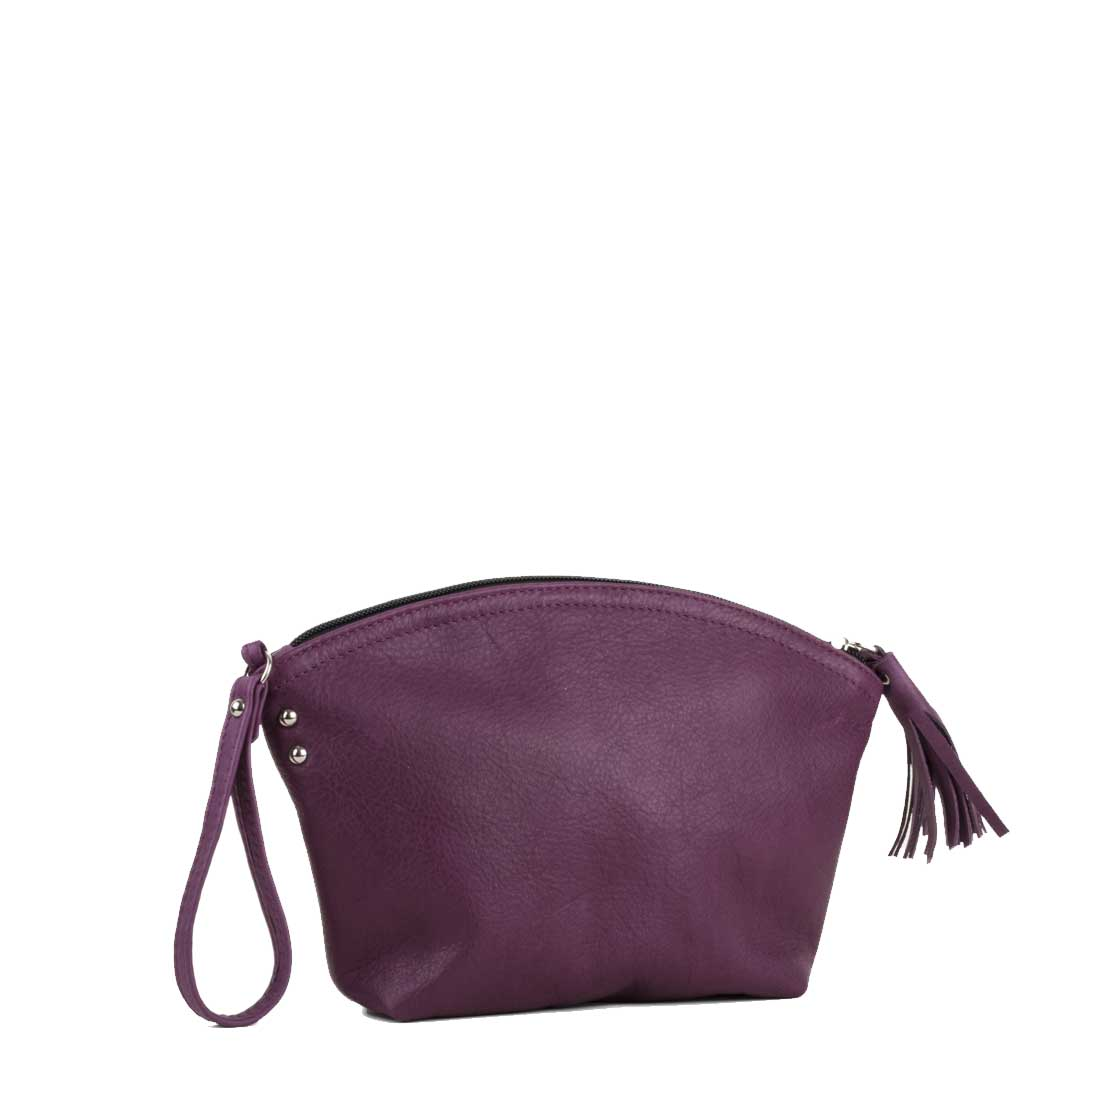 Wrist Bag In Magenta Leather